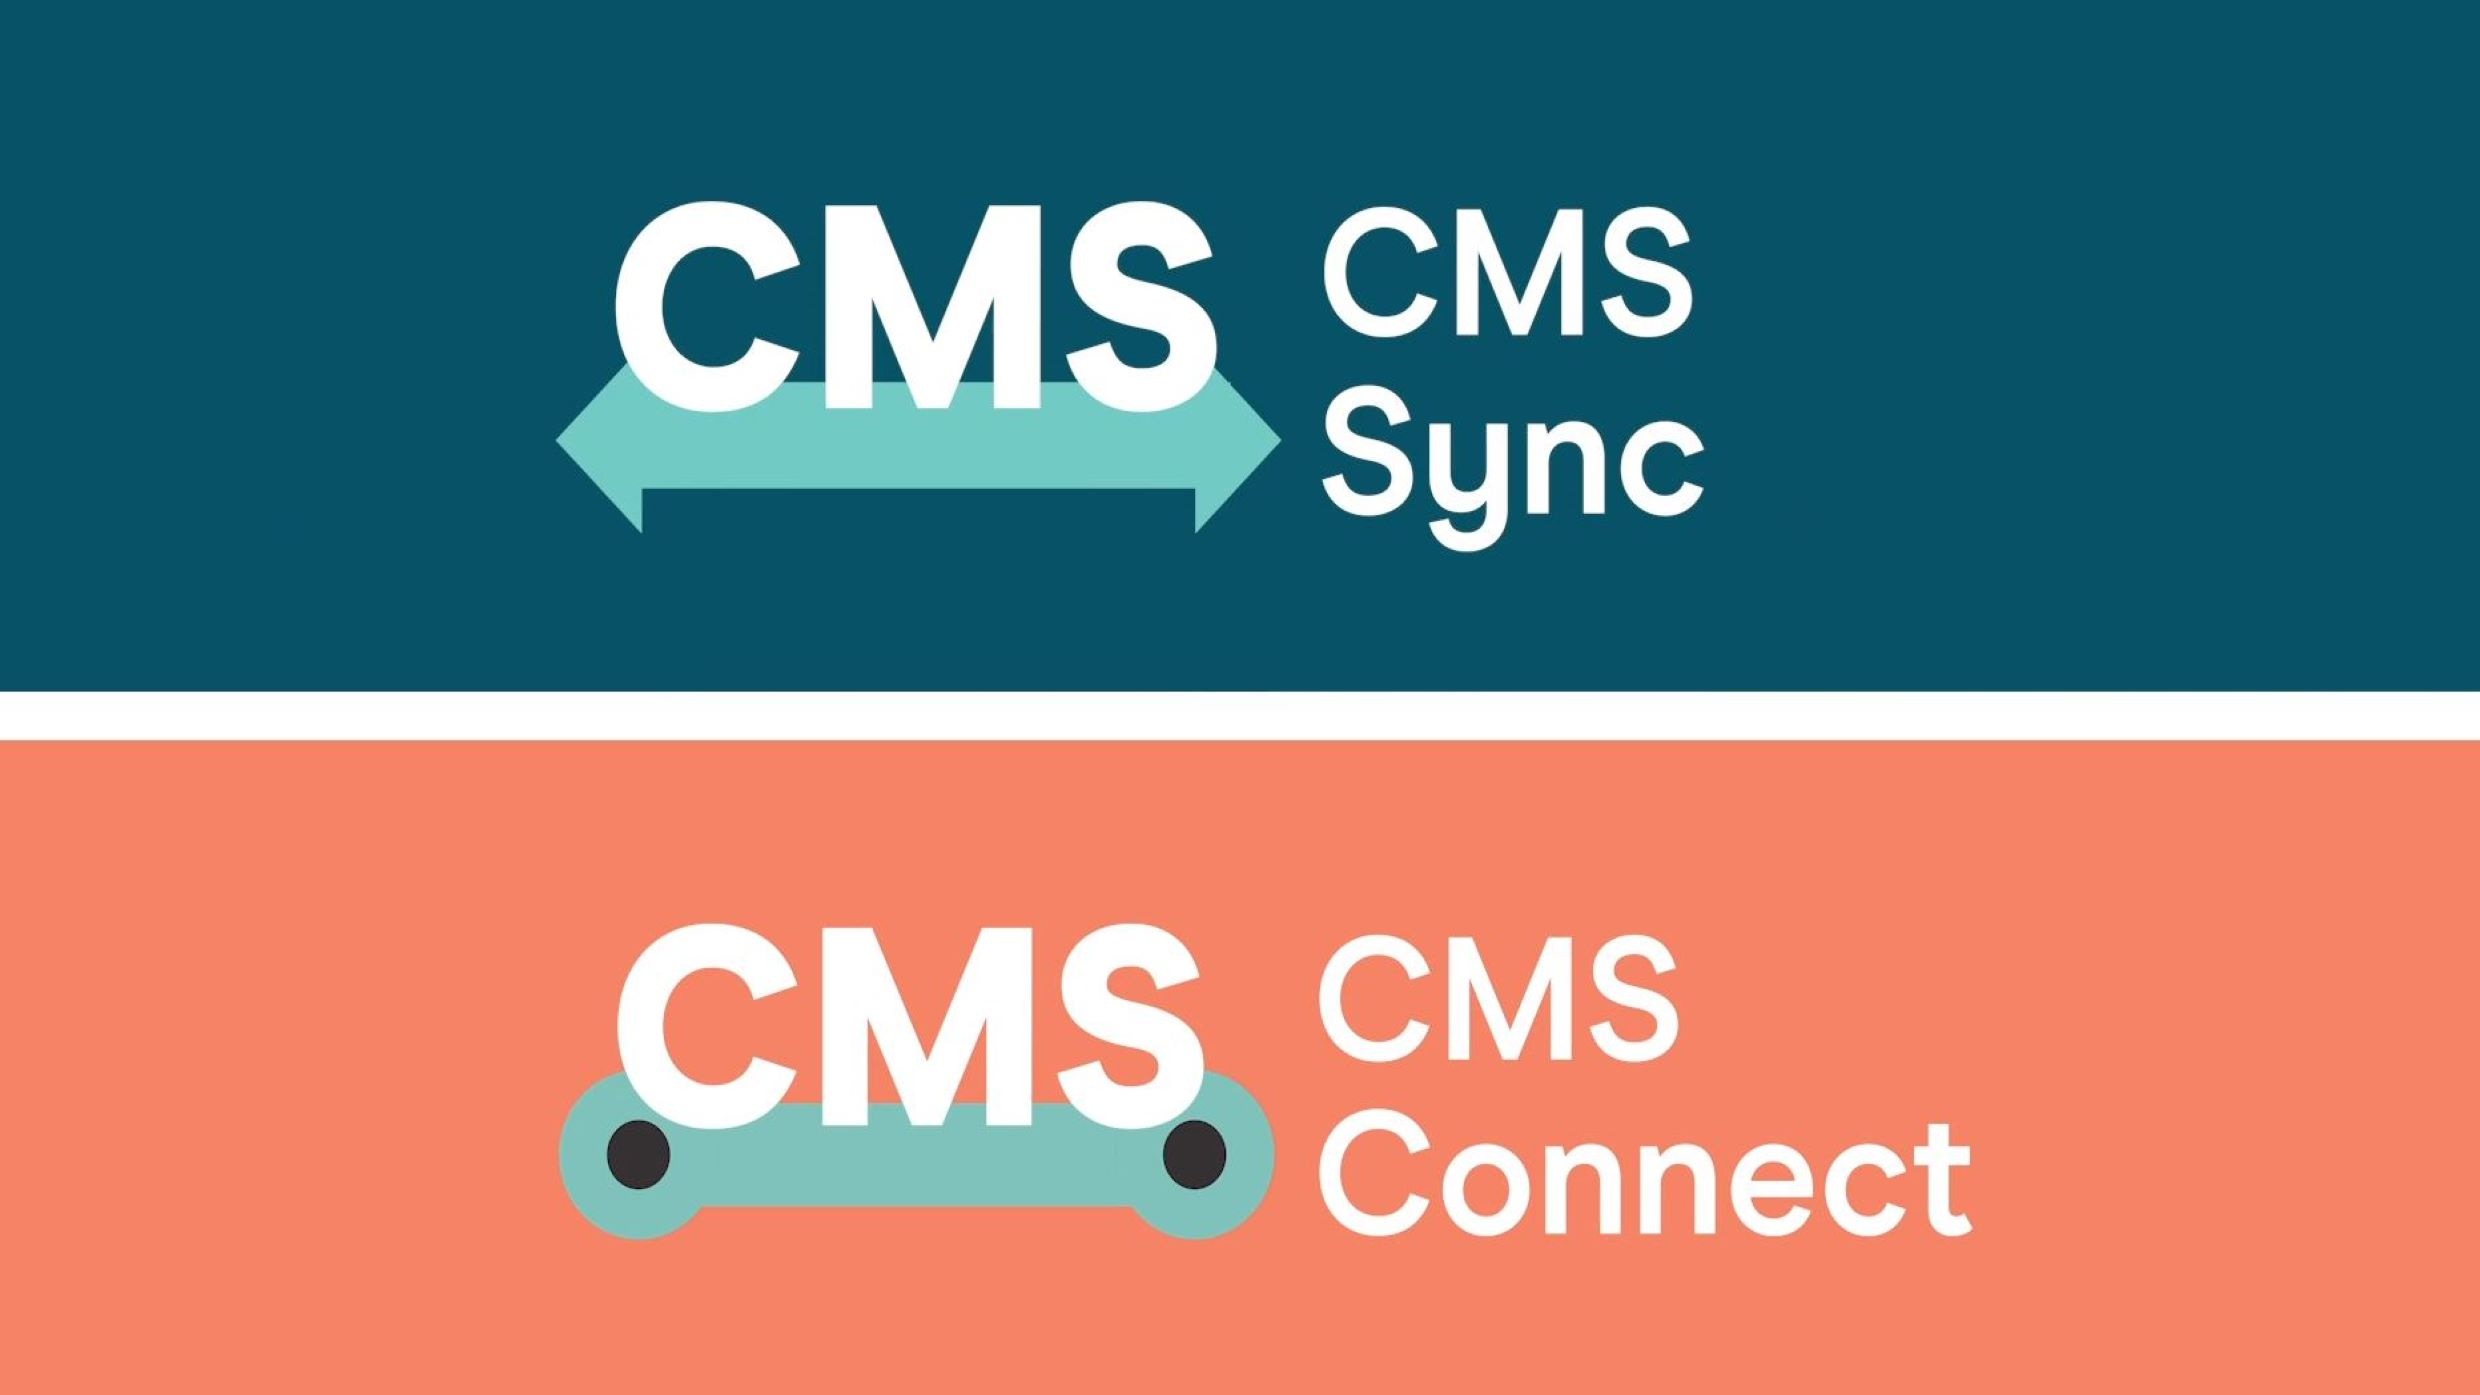 CMS Sync/Connect